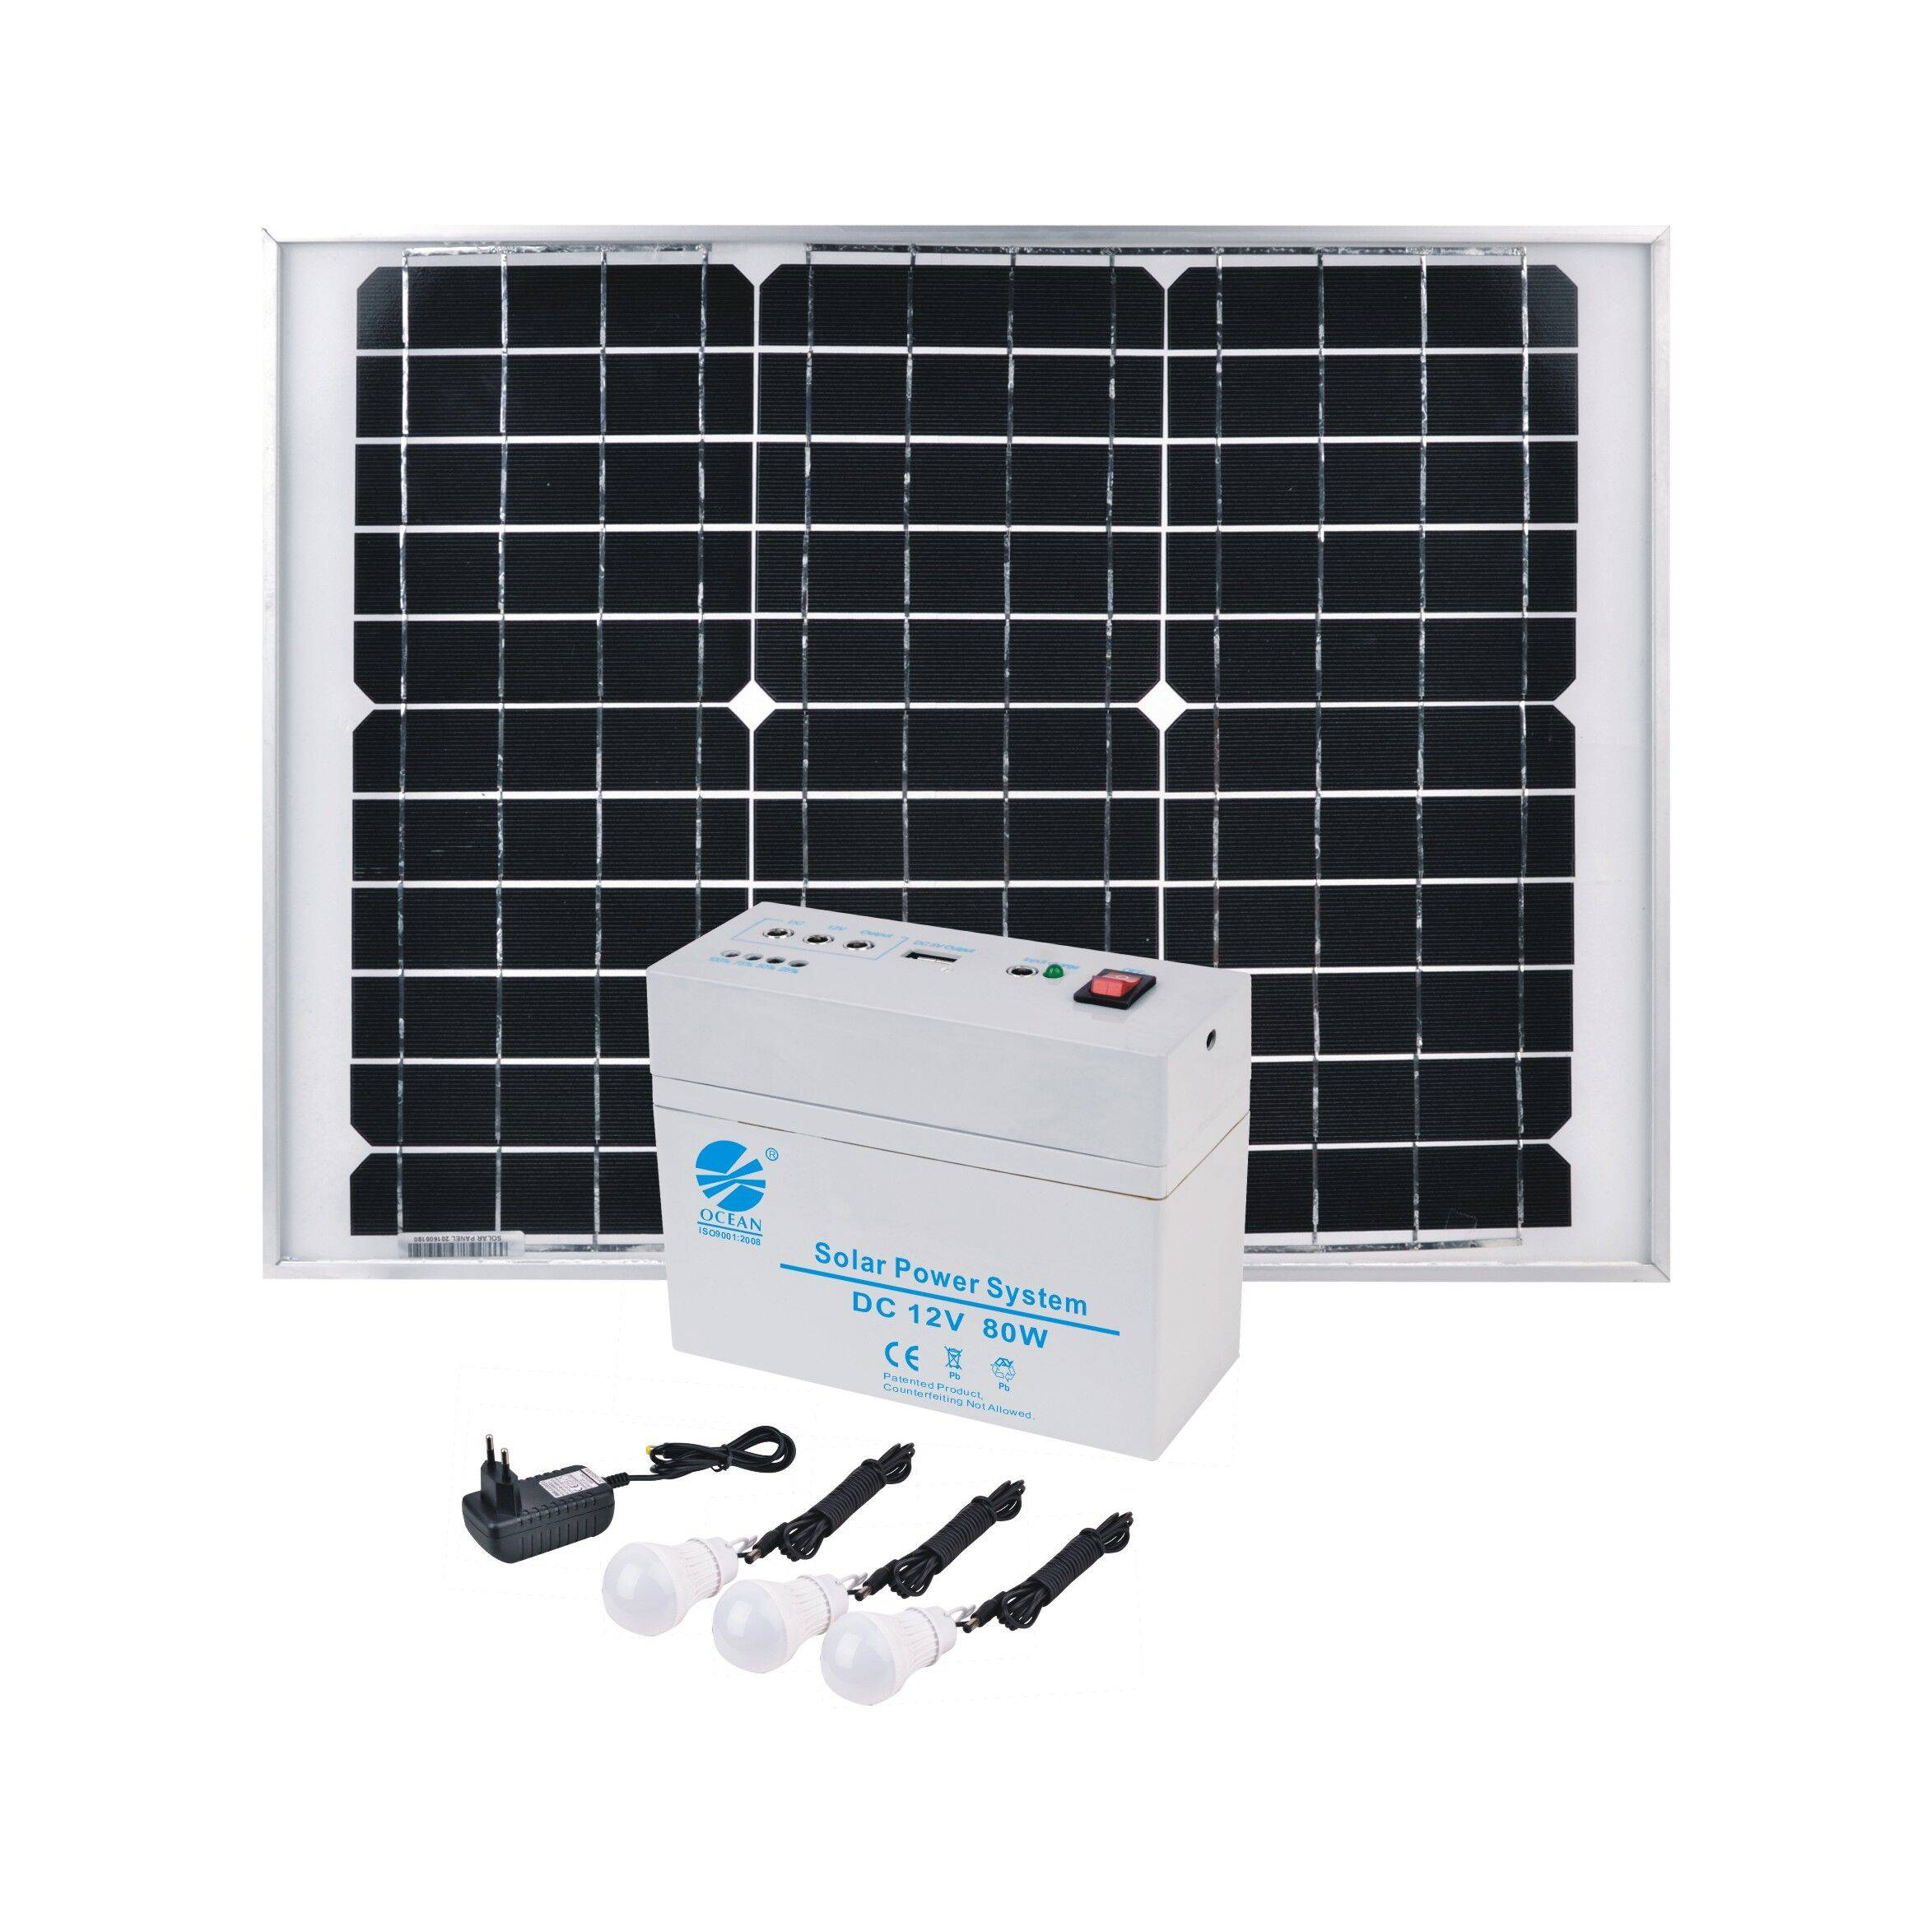 Mini portable solar energy system - DC 12V/80W/7AH